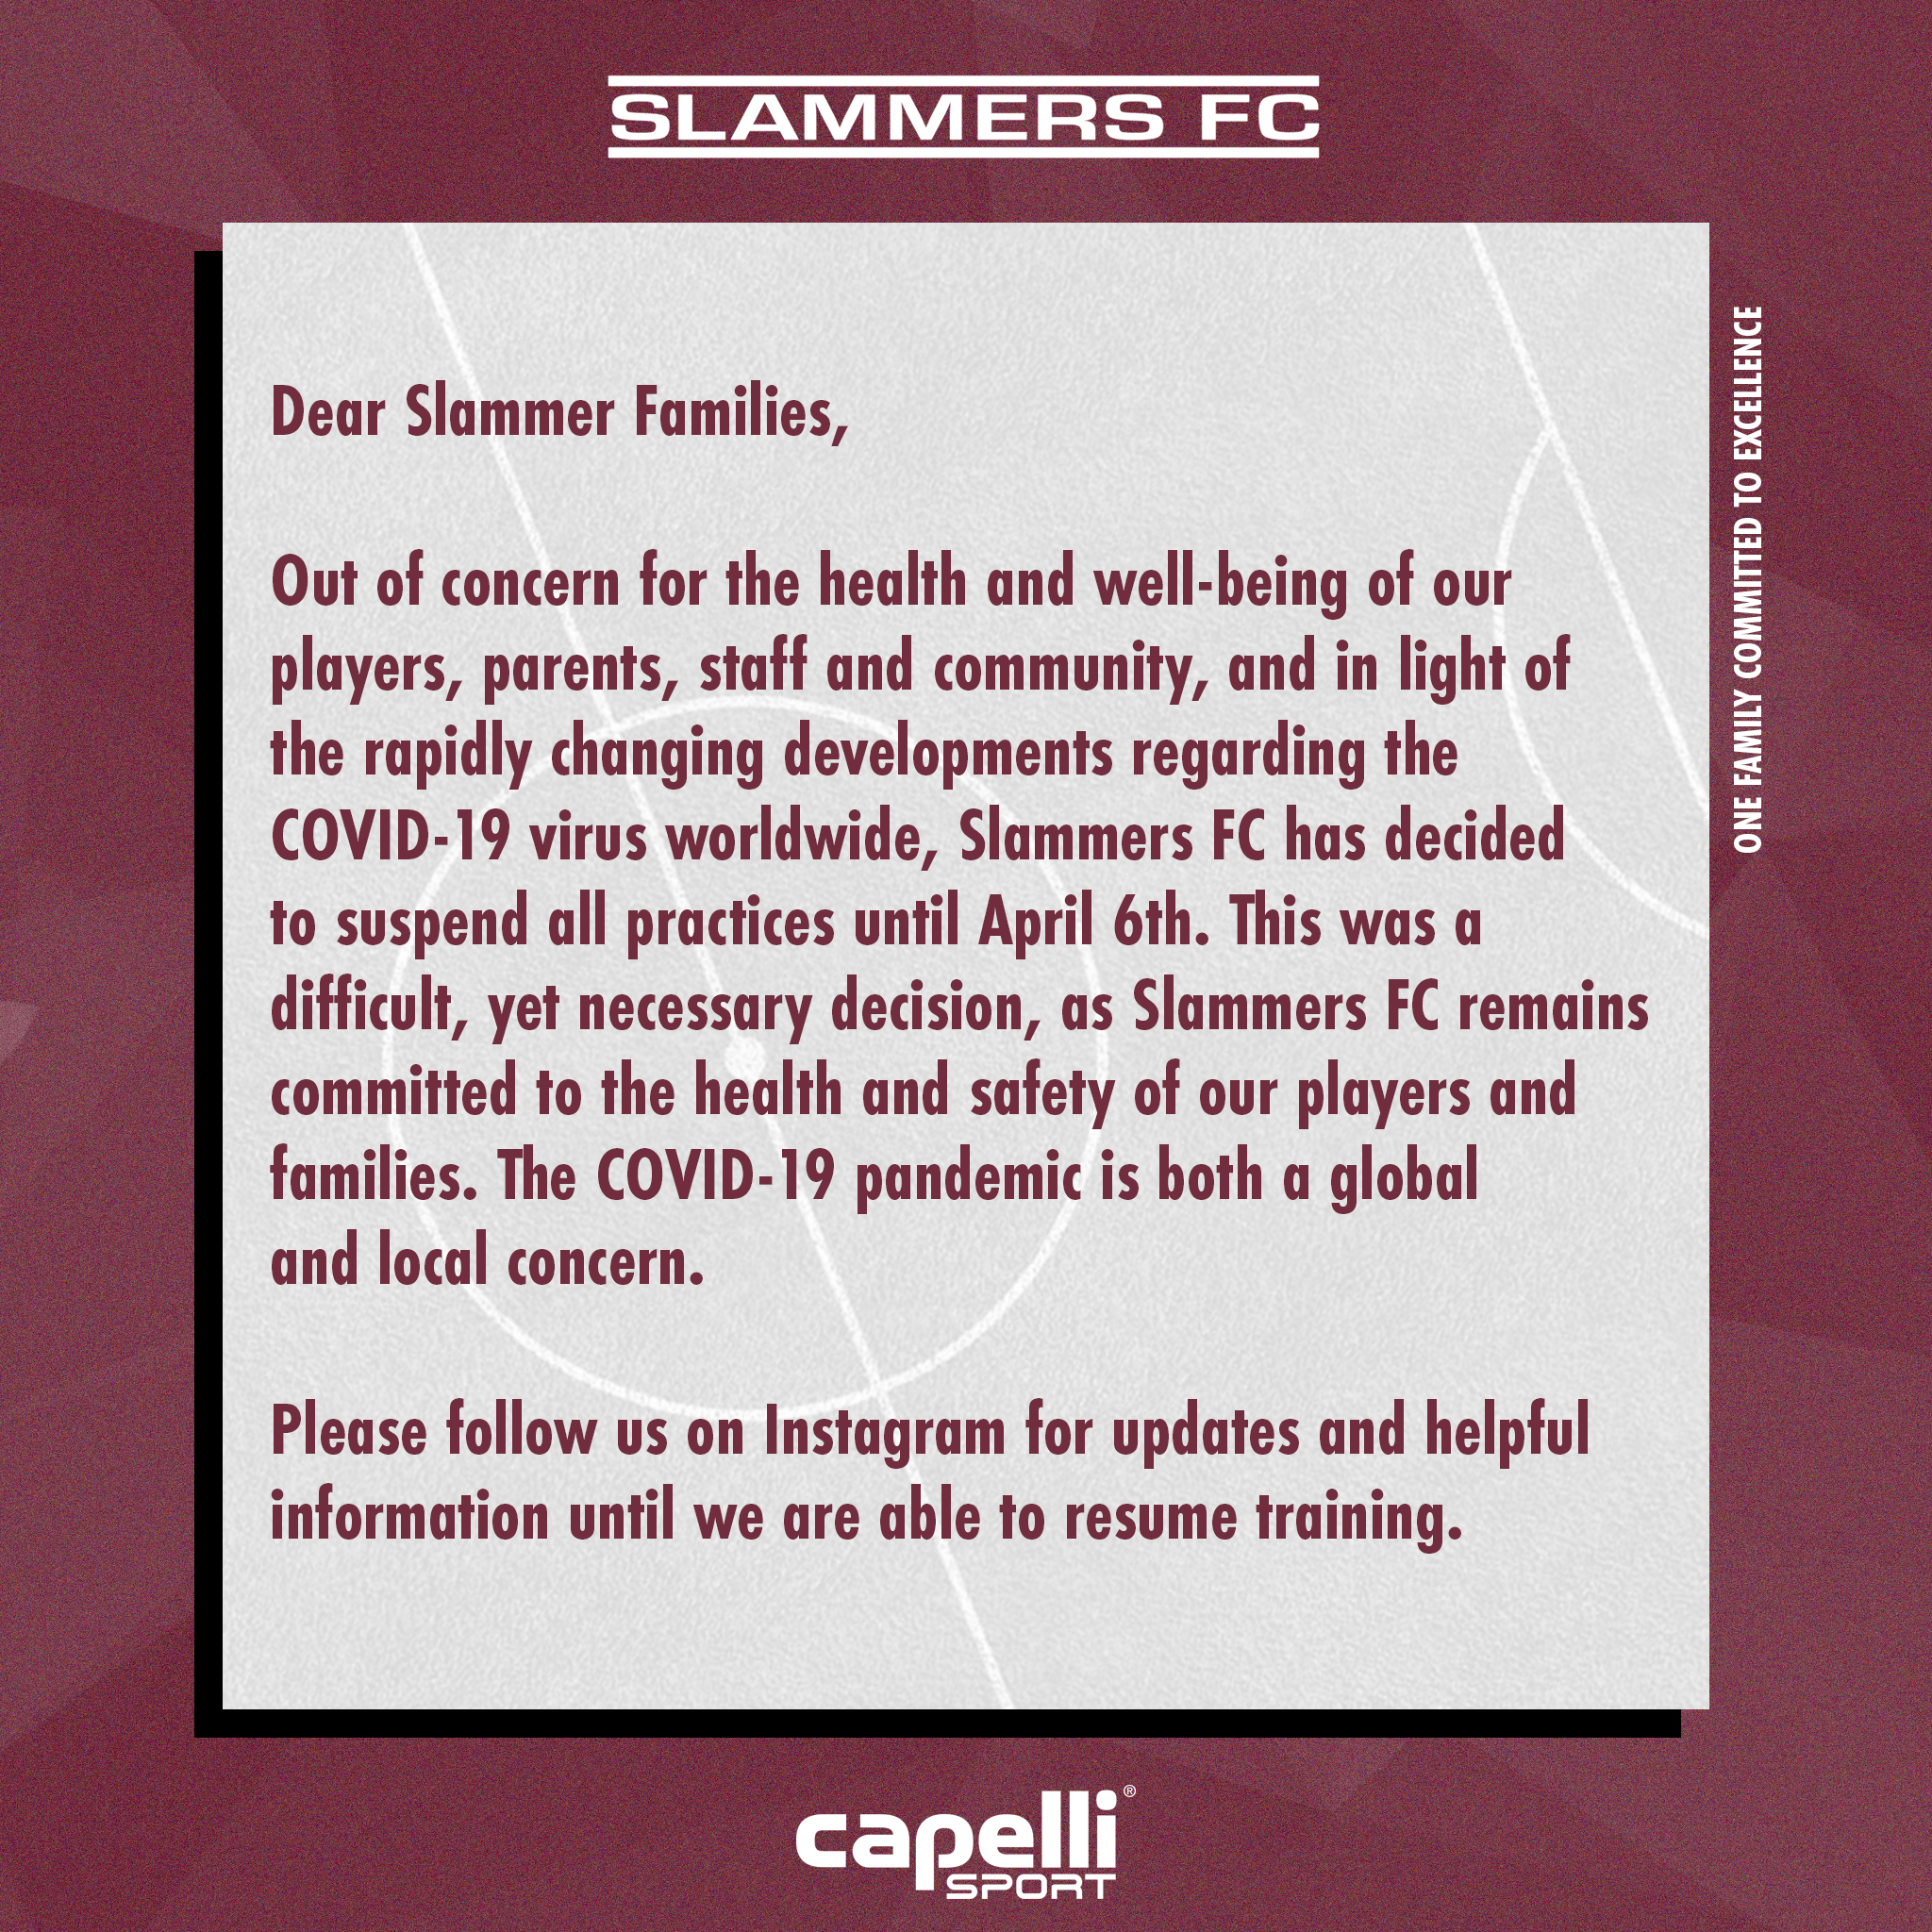 slammers fc march 13 announcement coronavirus